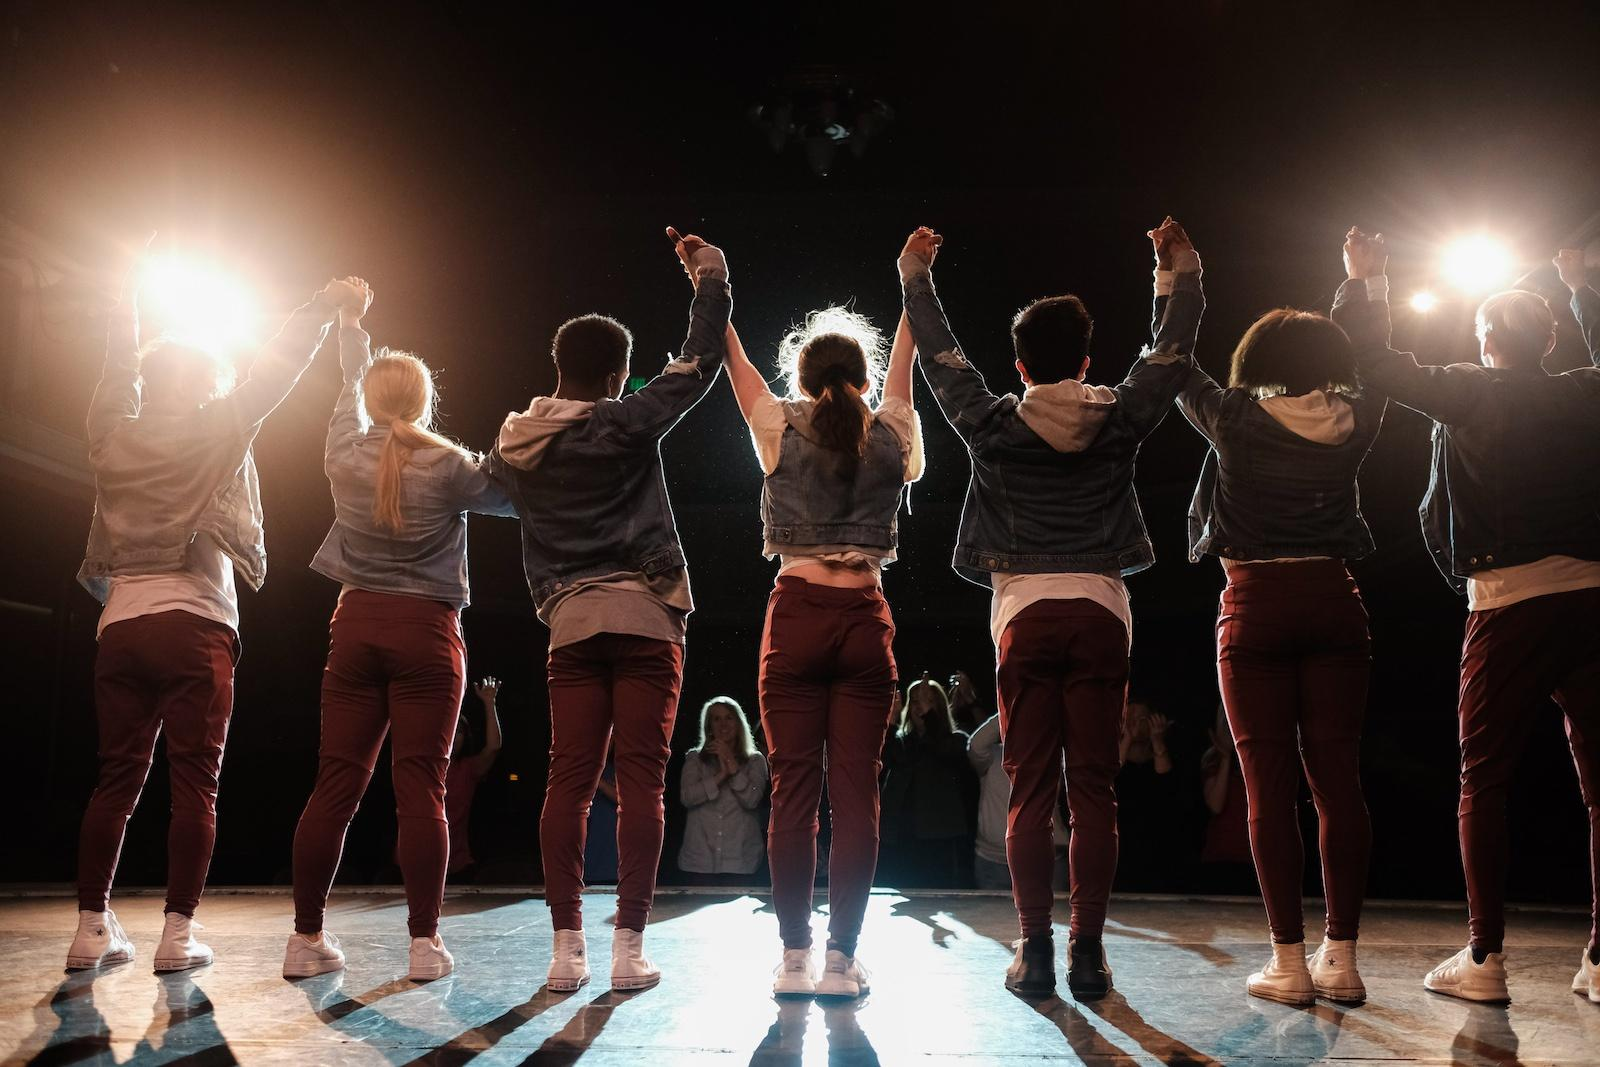 Row of performers taking a bow